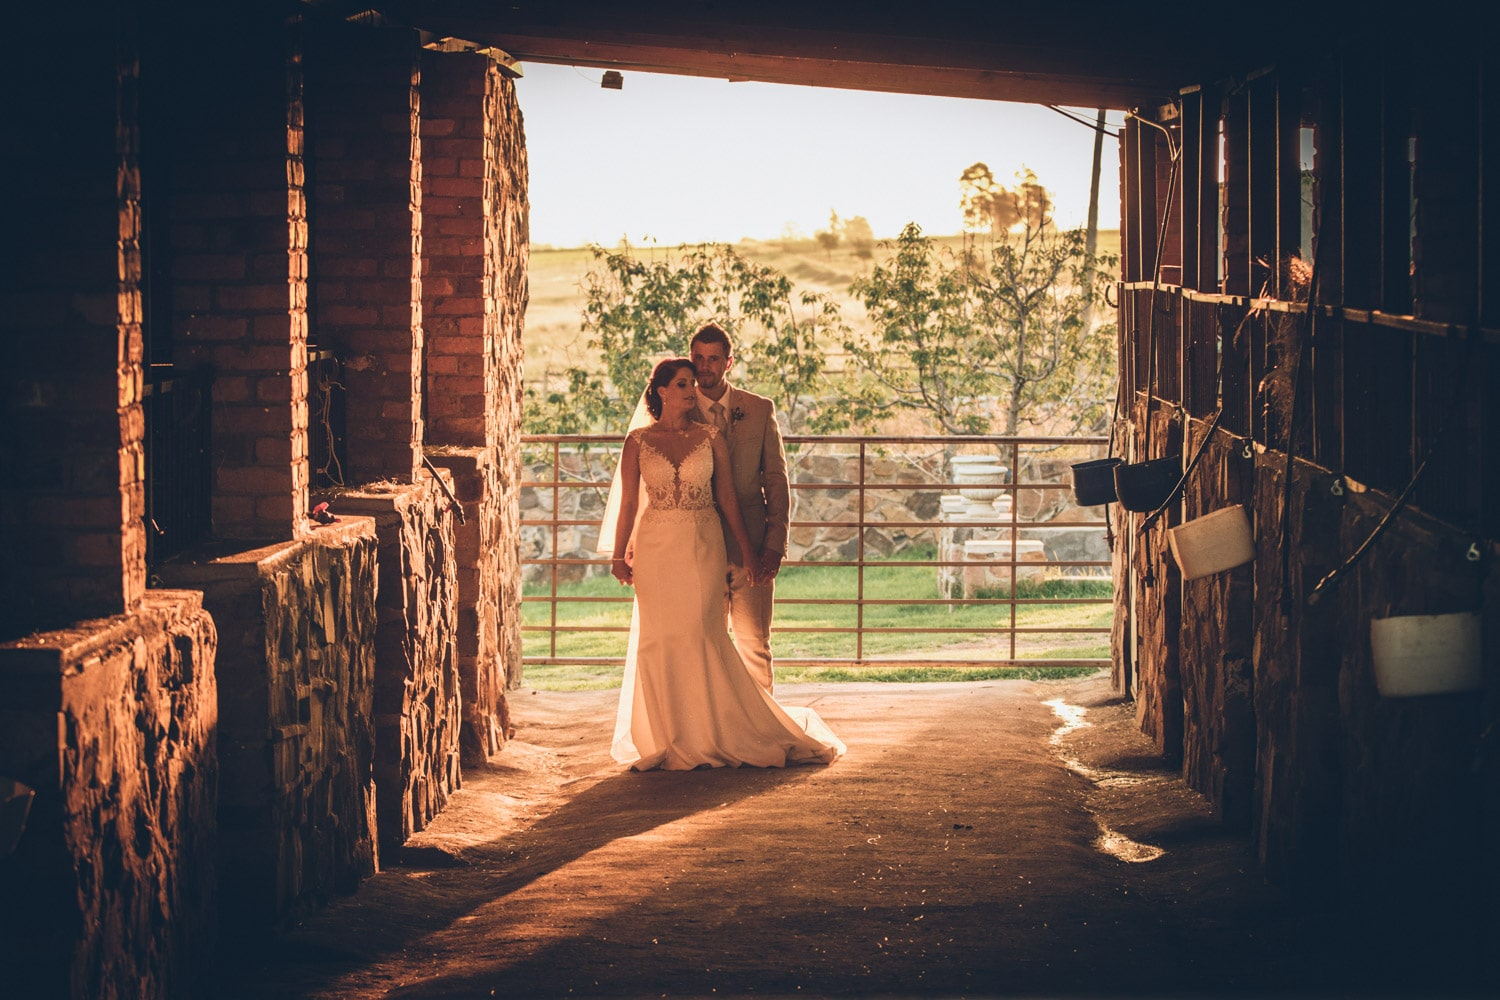 Bride and groom standing in stables.jpg